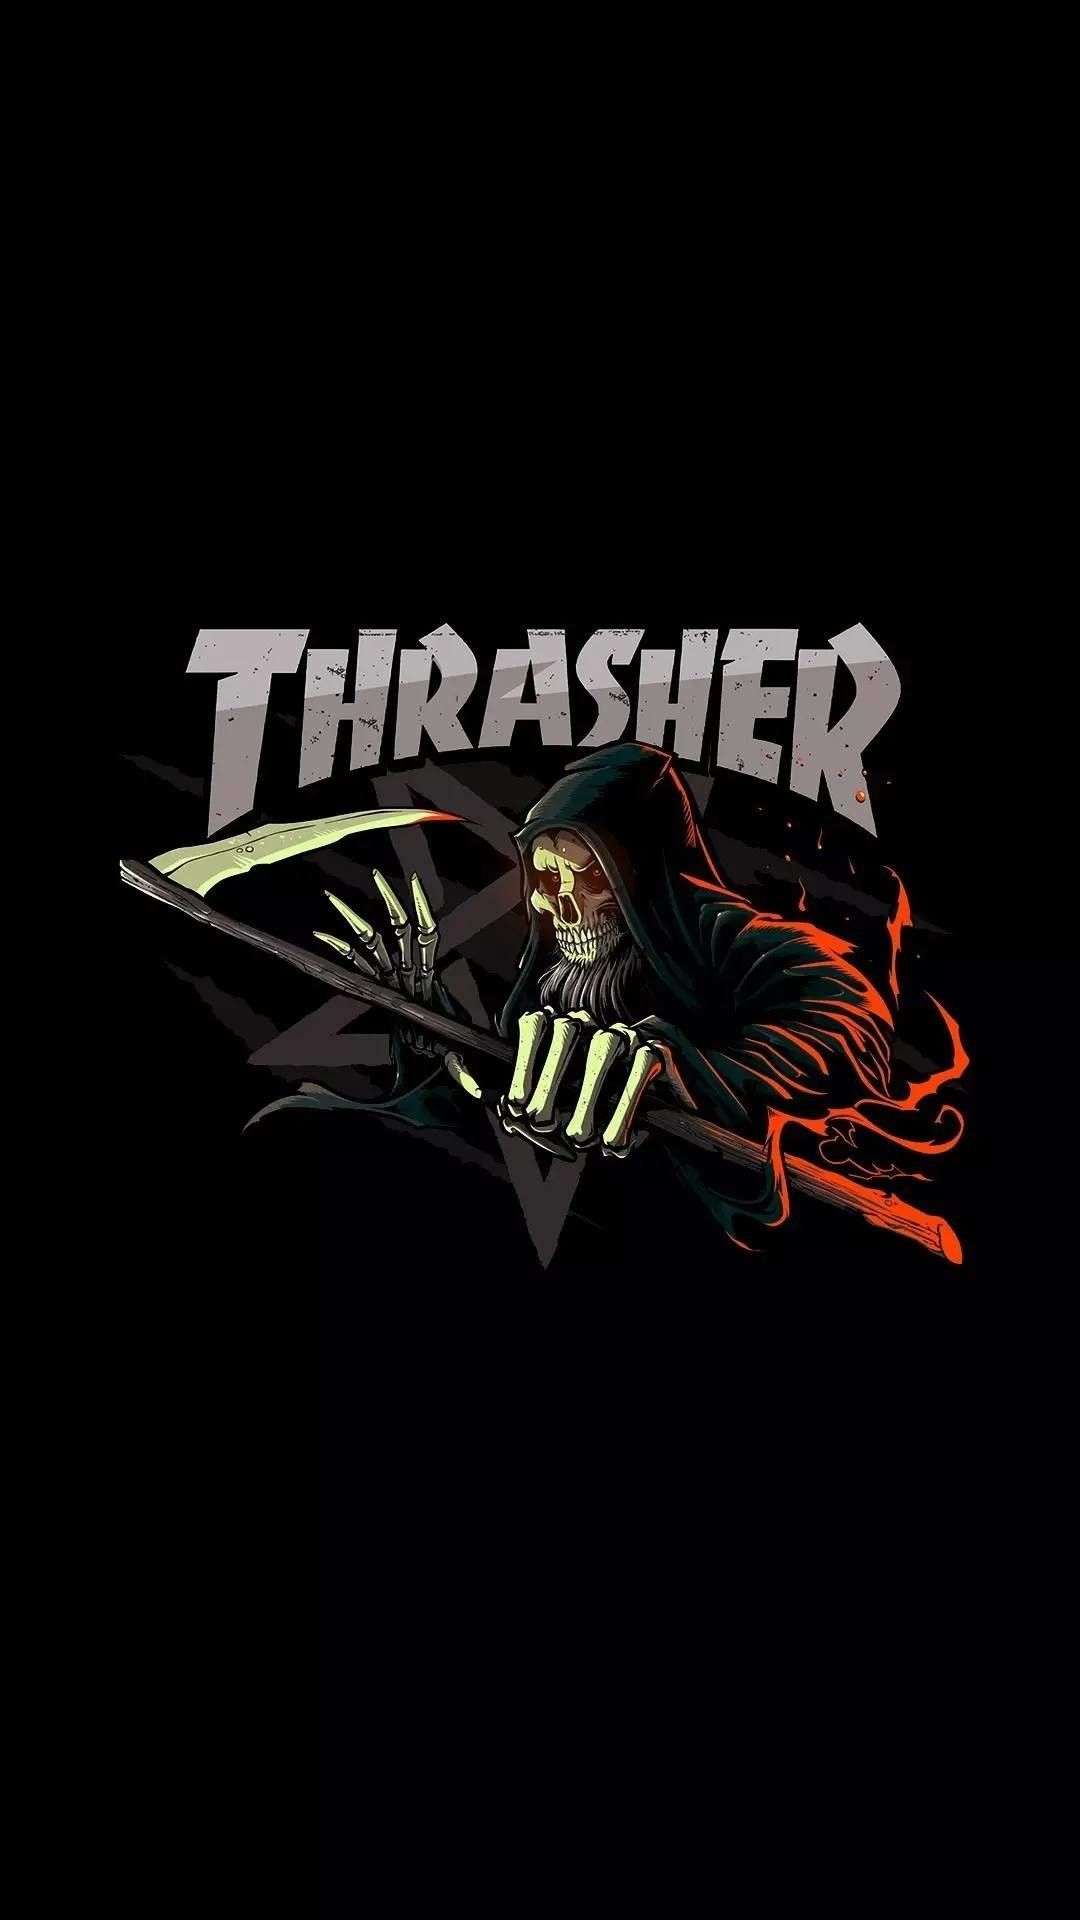 Dgk Wallpaper Iphone Thrasher Wallpapers Top Free Thrasher Backgrounds